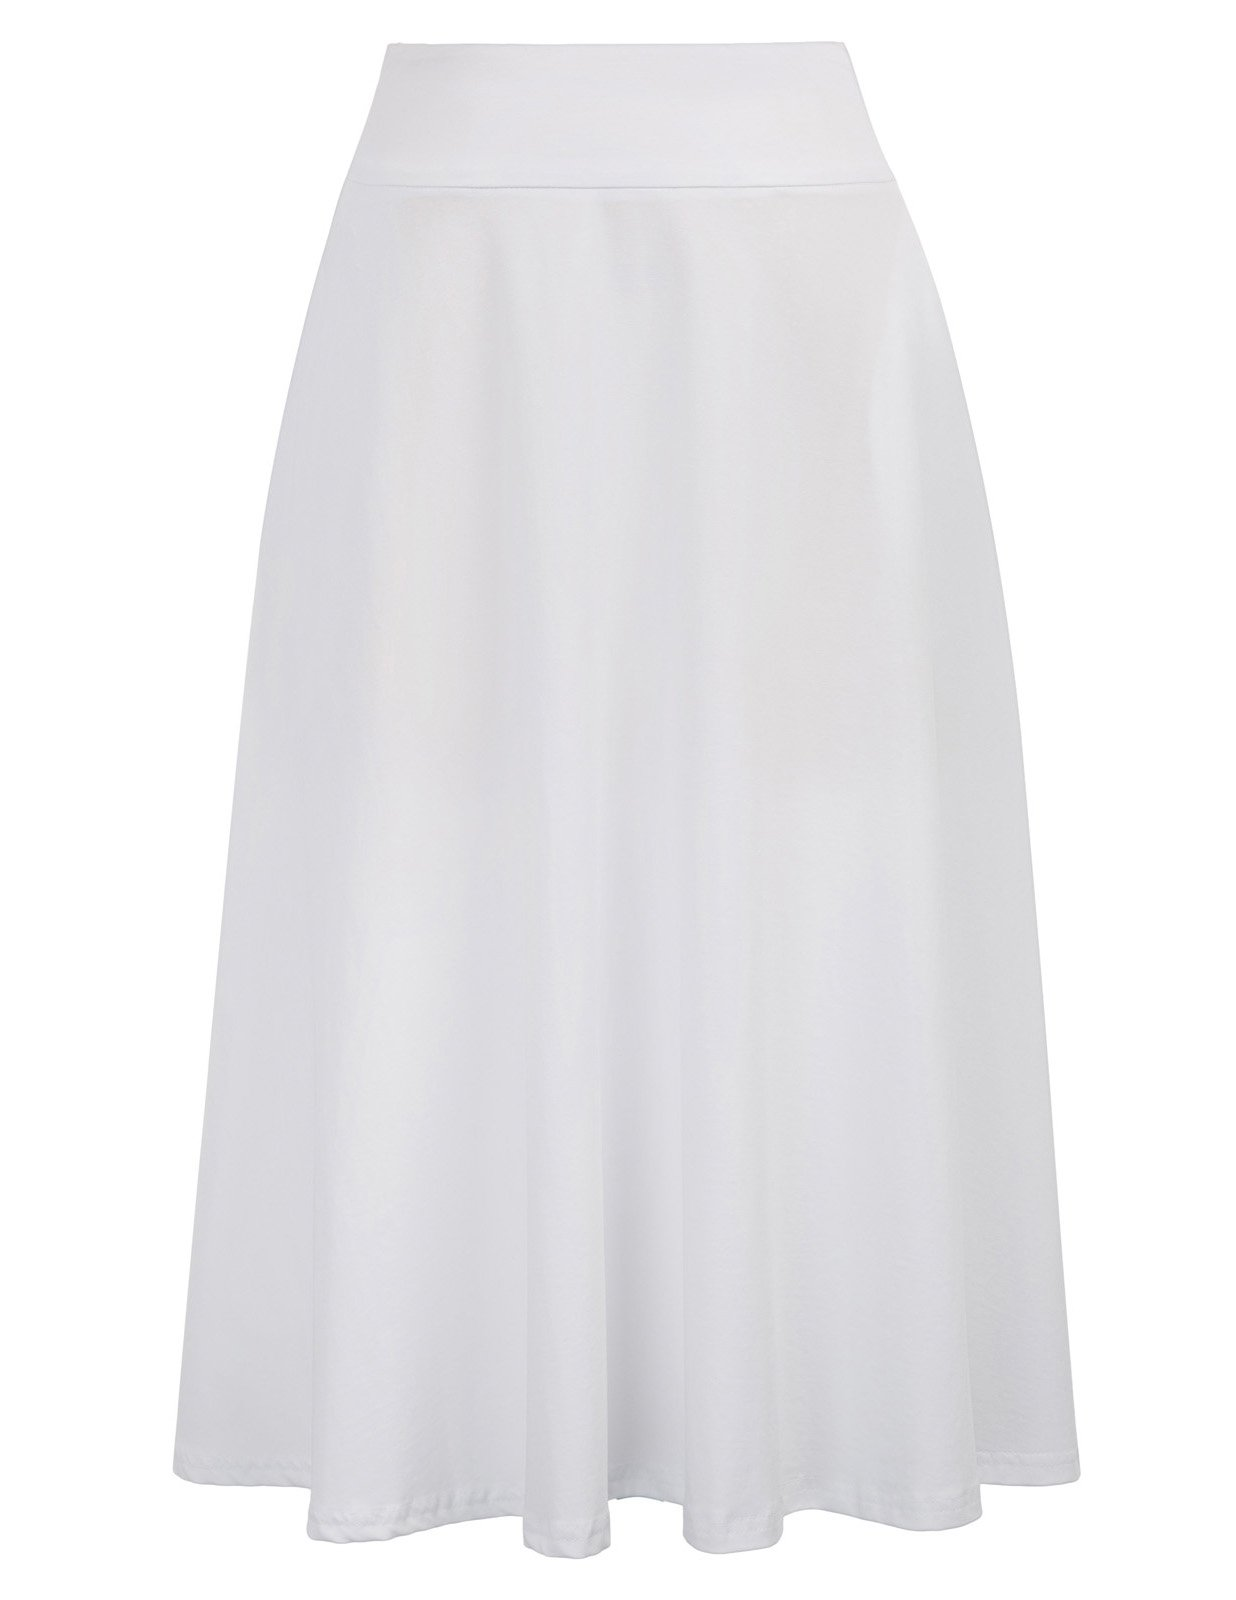 Everyday High Waist A-Line Flared Skater Midi Skirt (M,White)